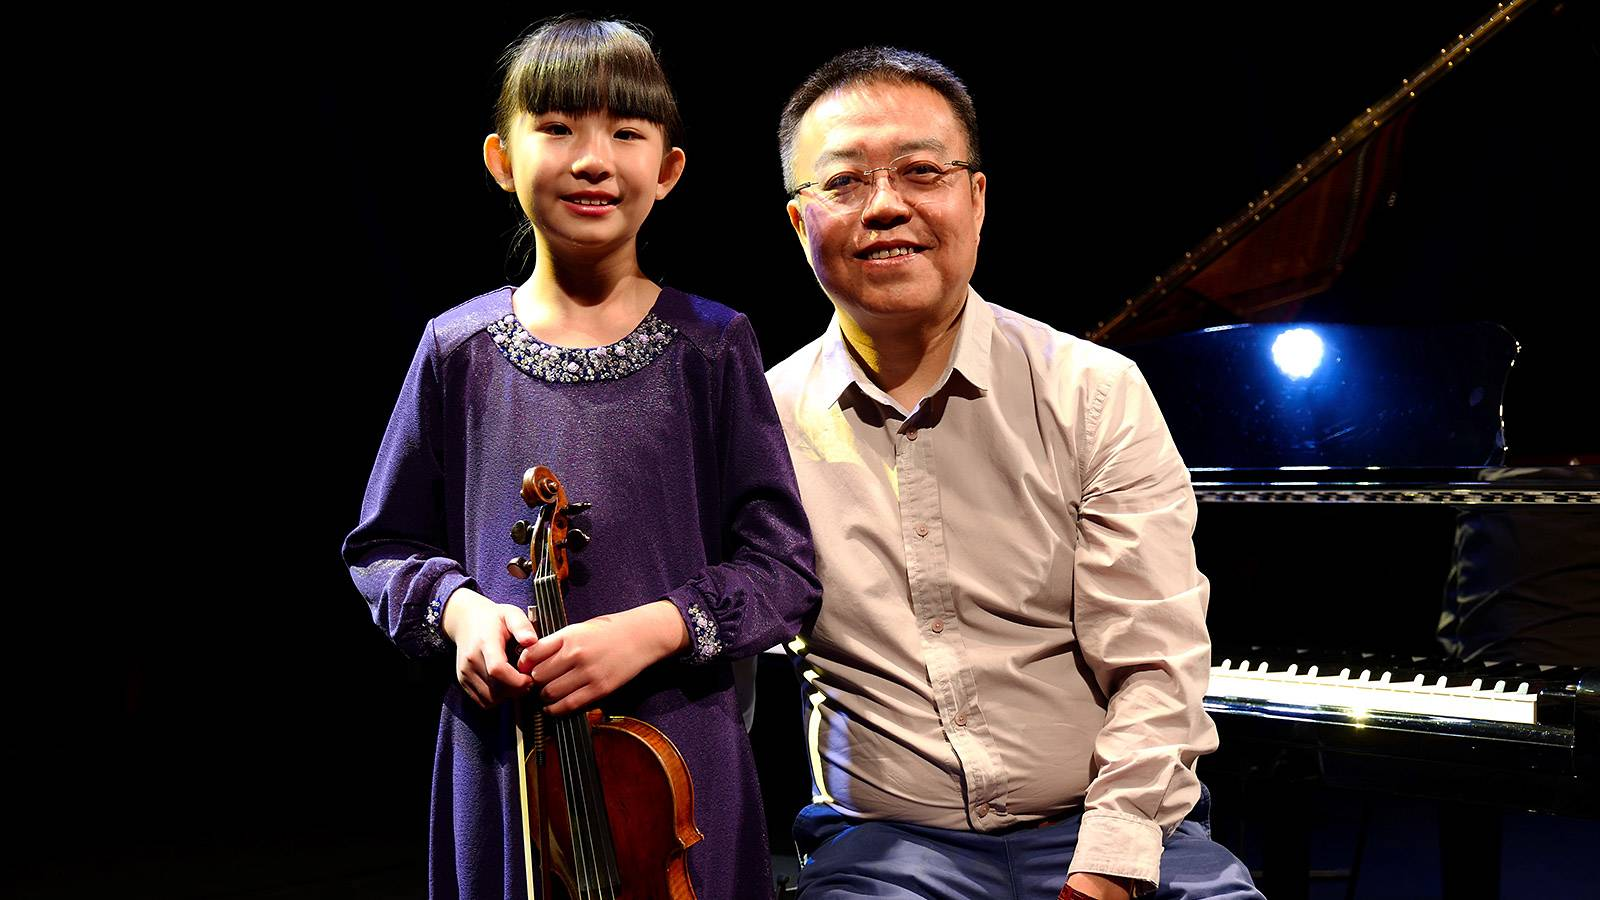 Kids-CONVERSATIONS-WITH-An-Award-Winning-Violin-Prodigy-1